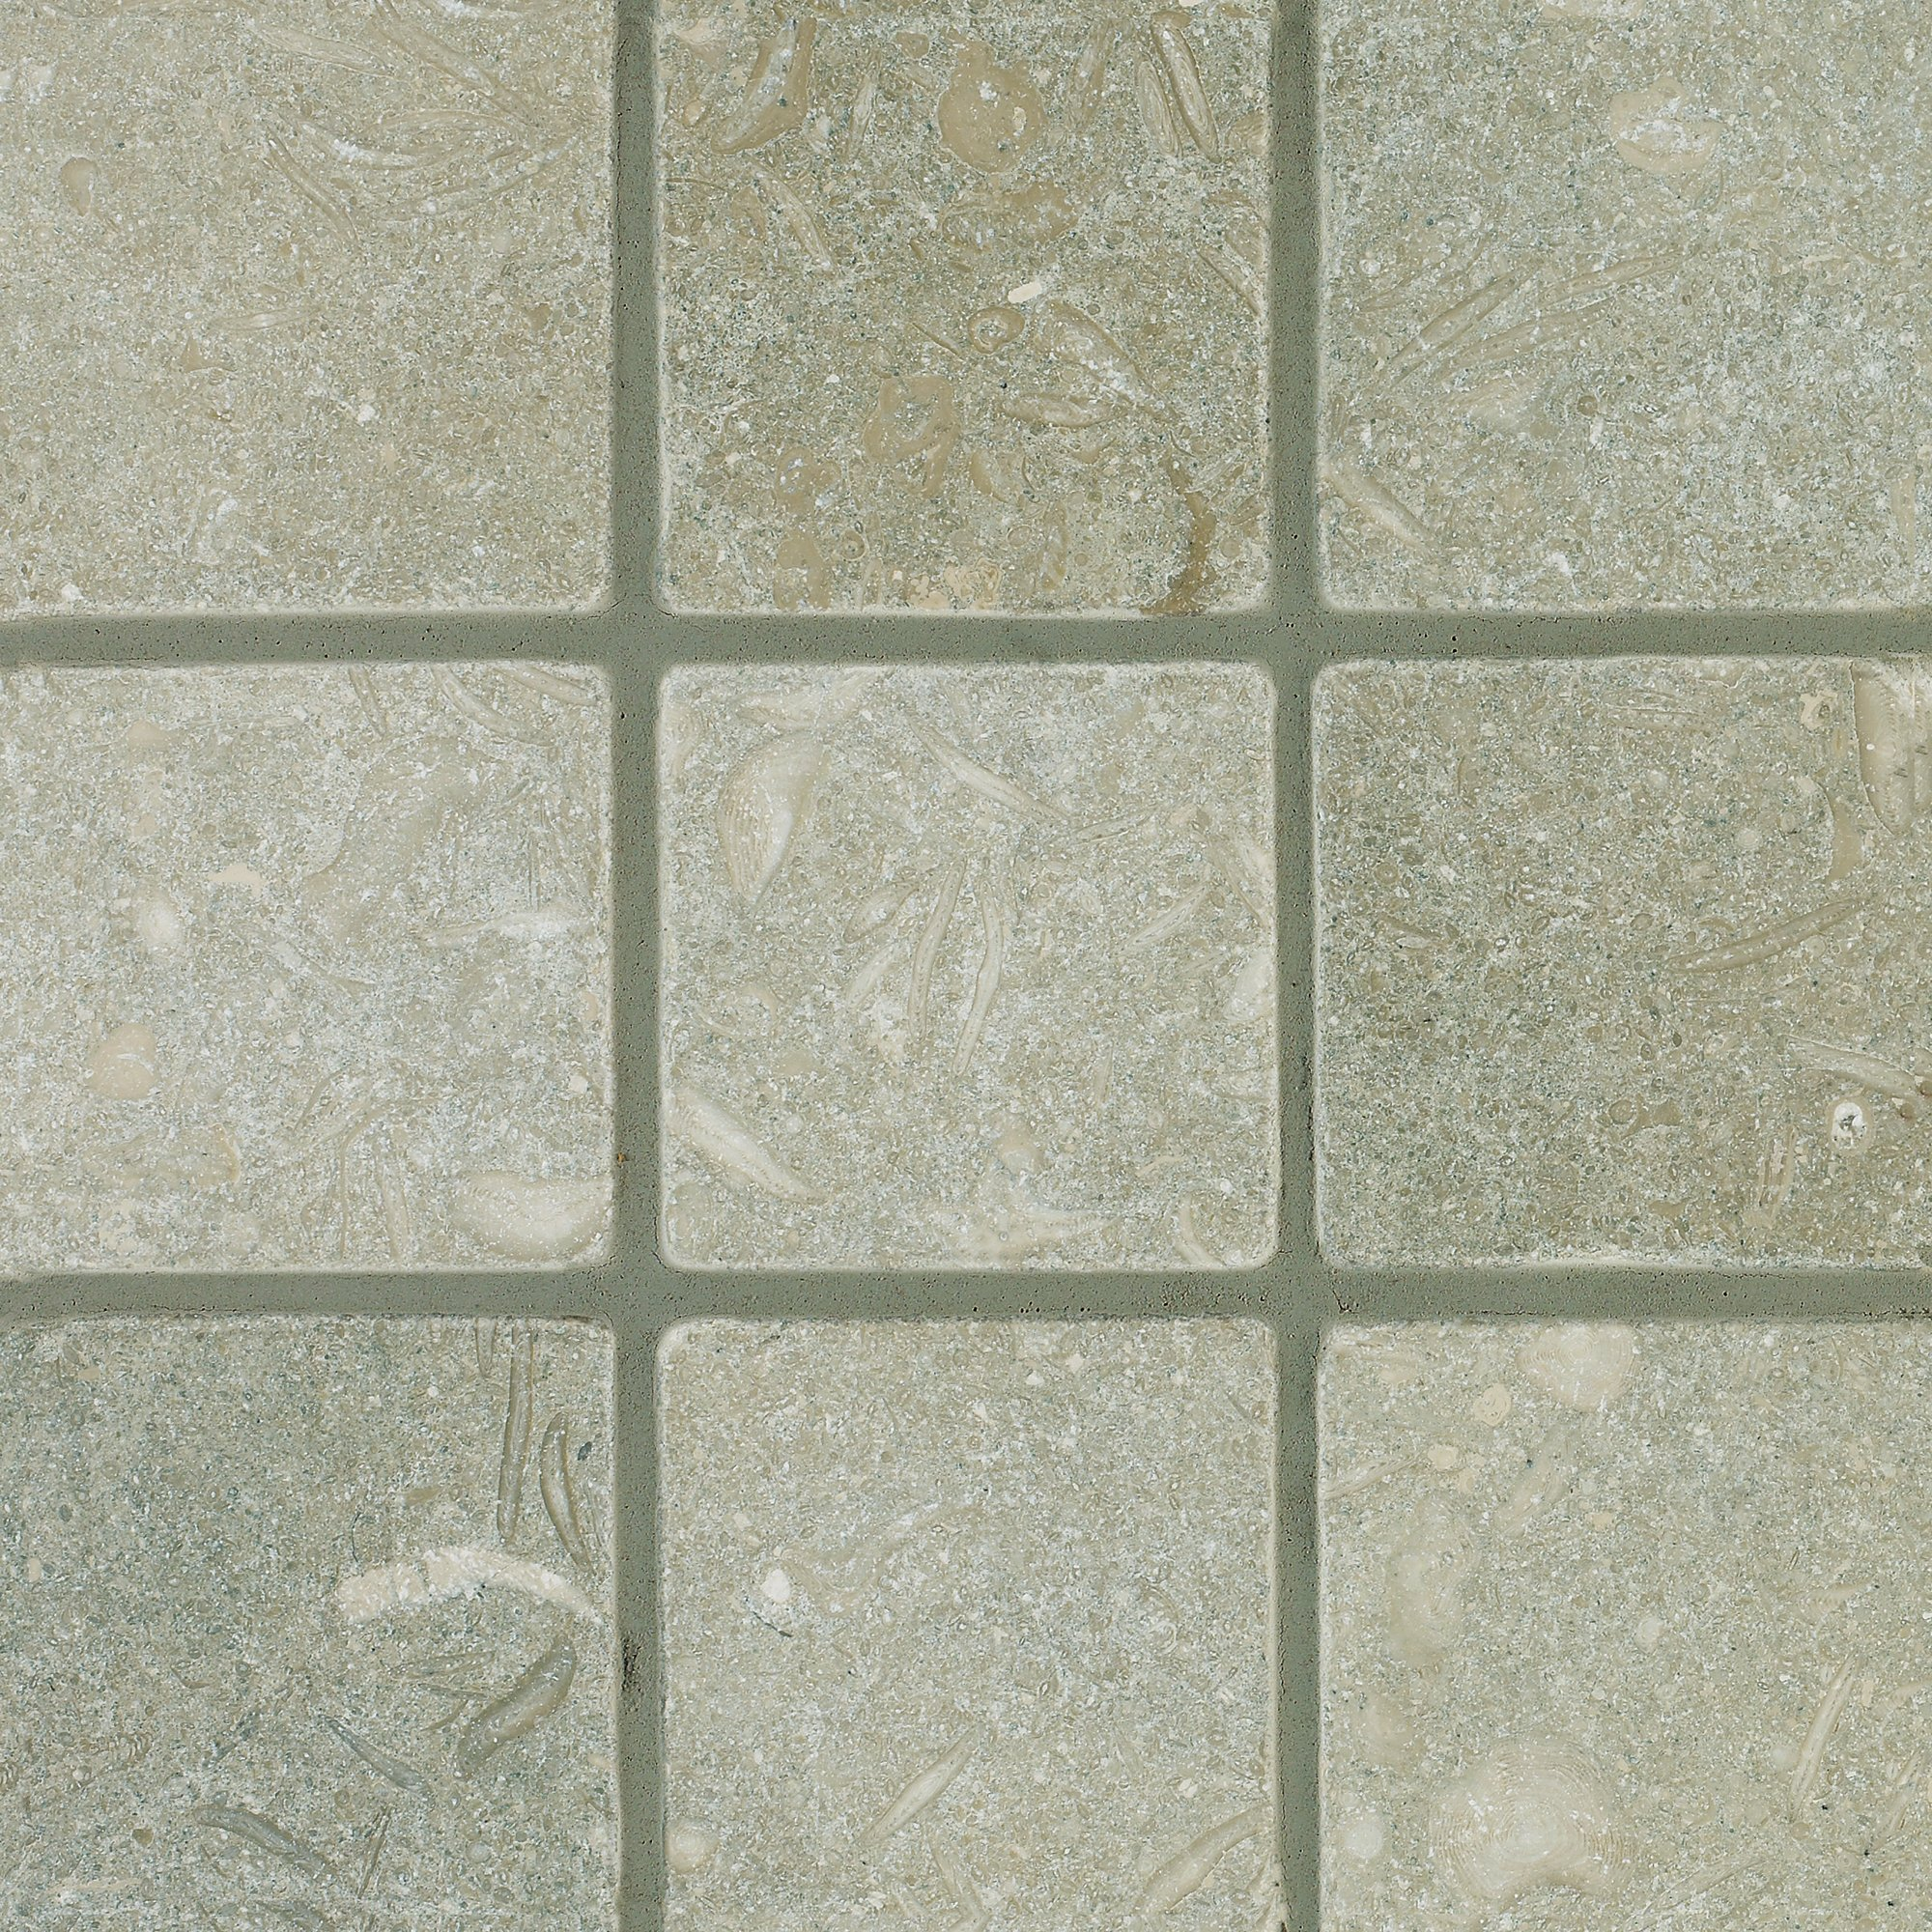 Arizona Tile 4 by 4-Inch Tumbled Limestone Tile, Seagrass, 5-Total Square Feet